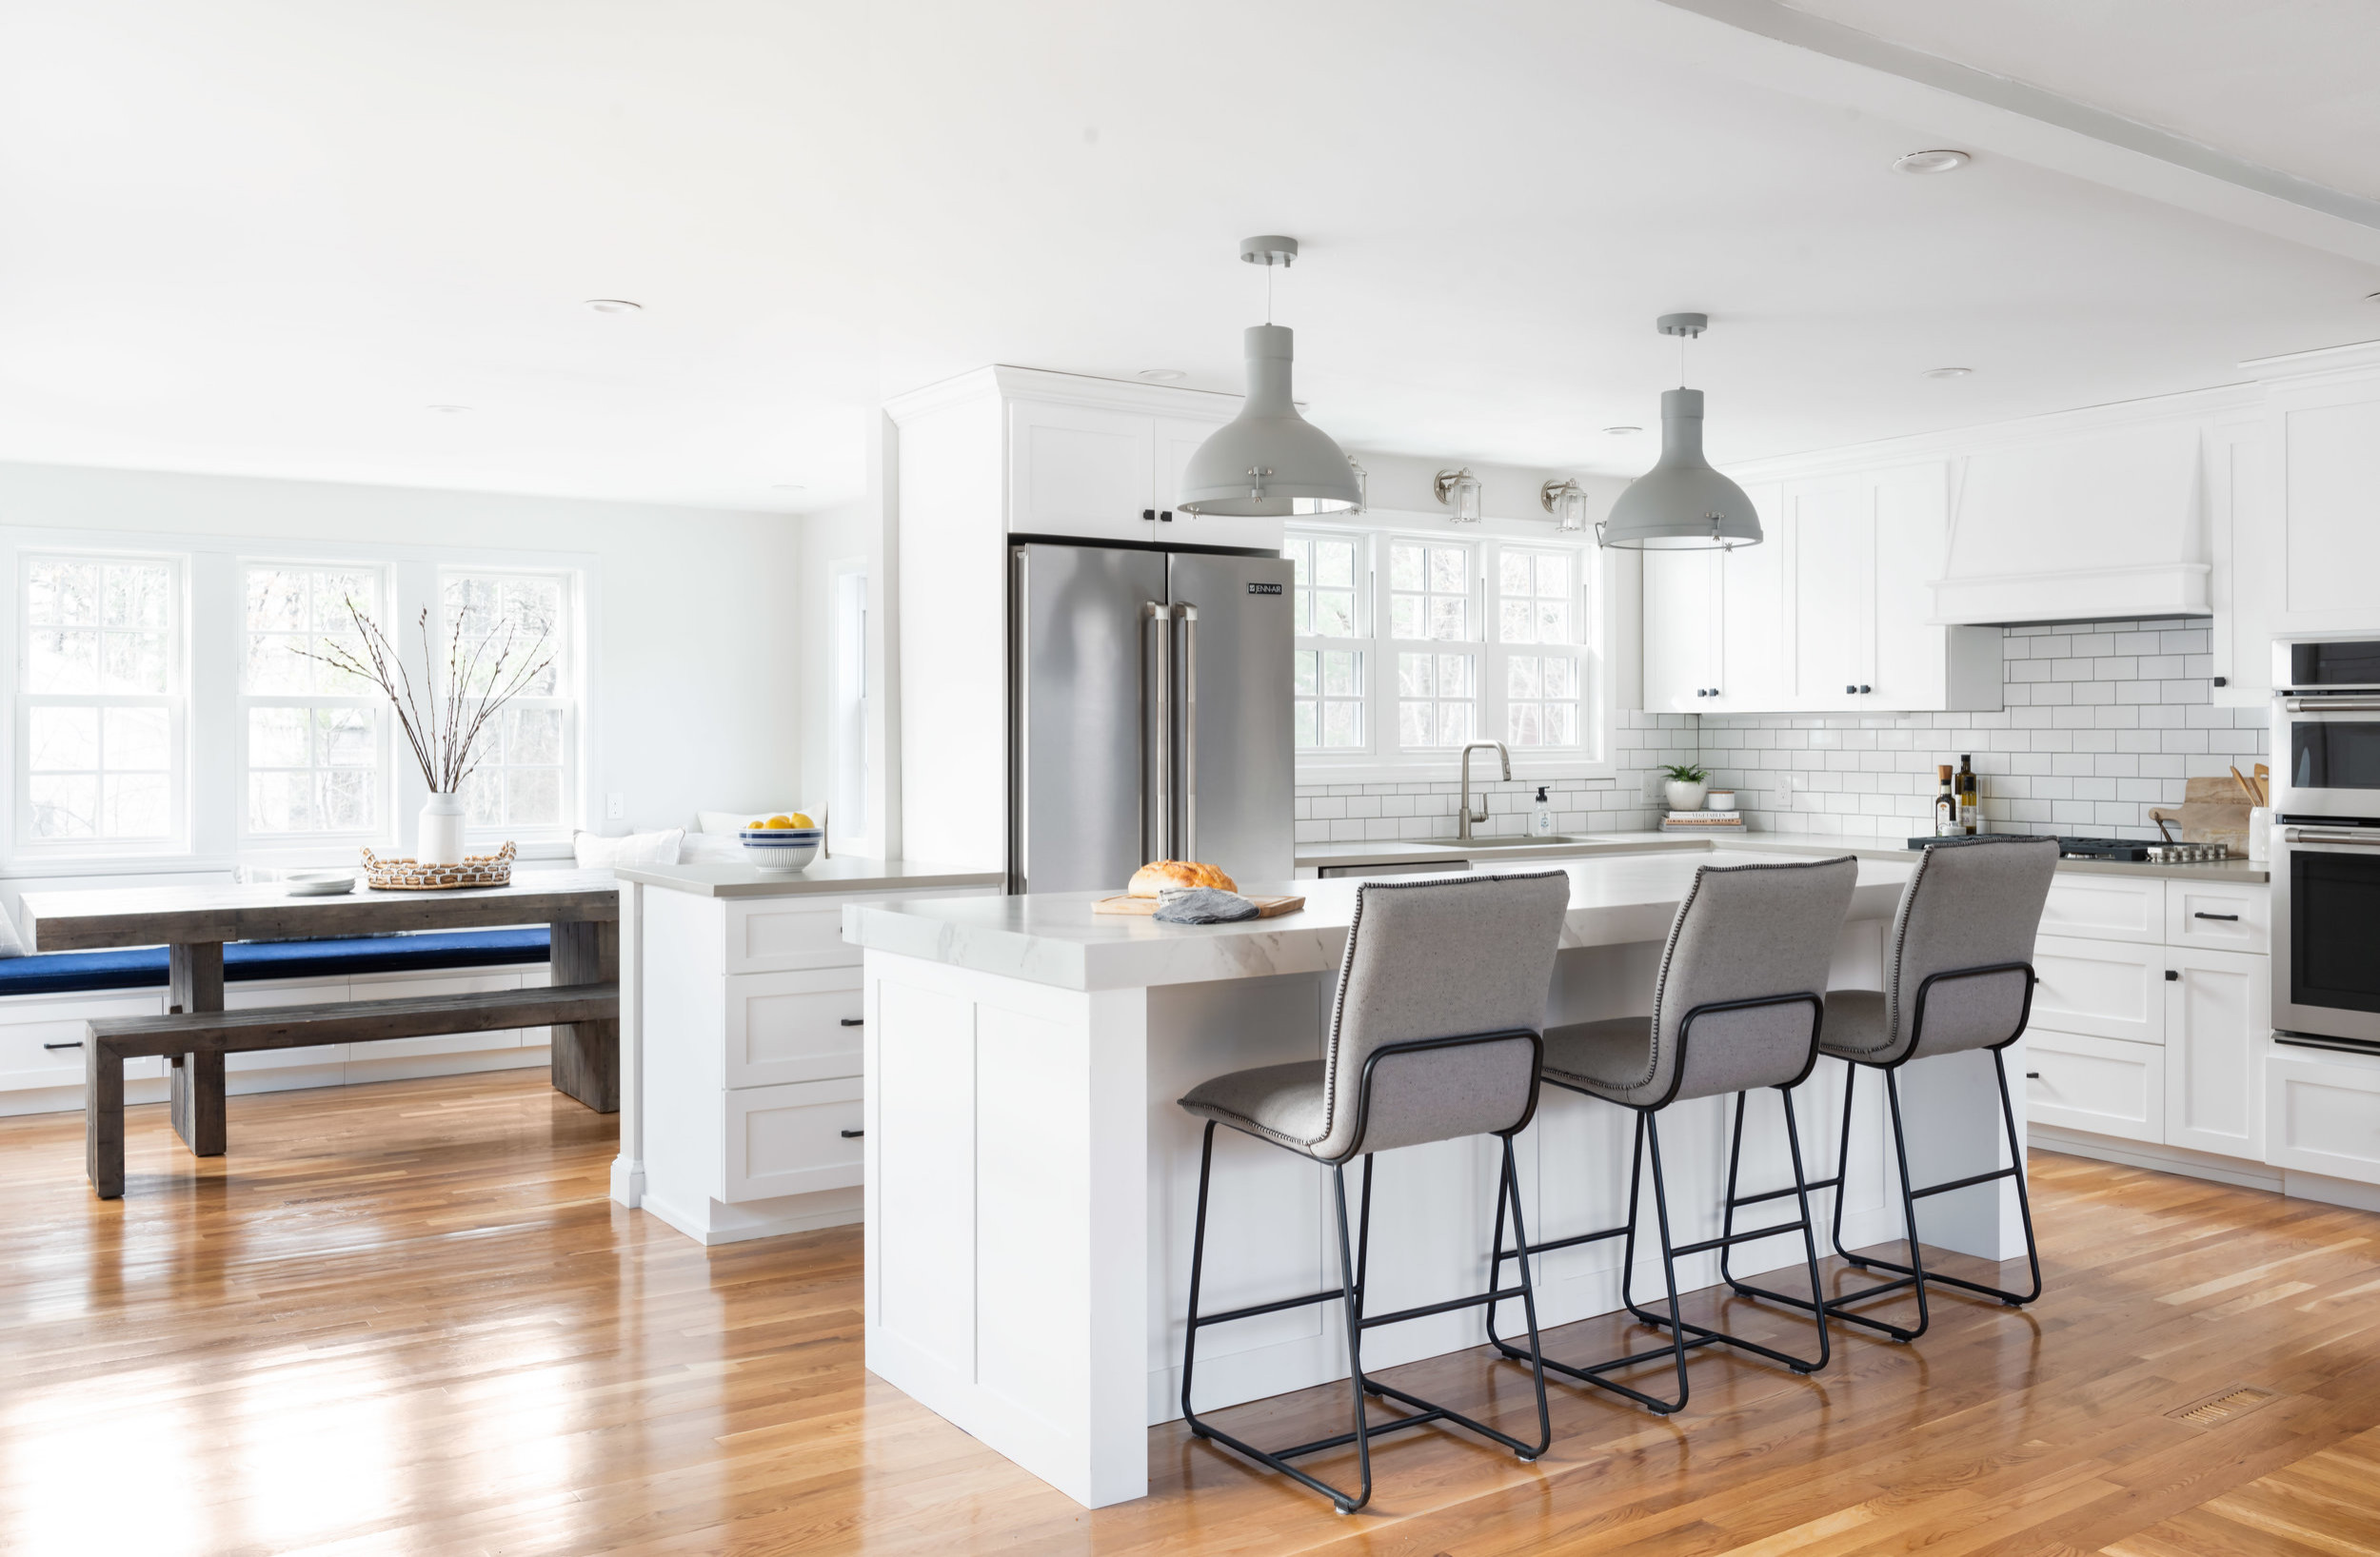 Medfield Kitchen and Dining Renovation